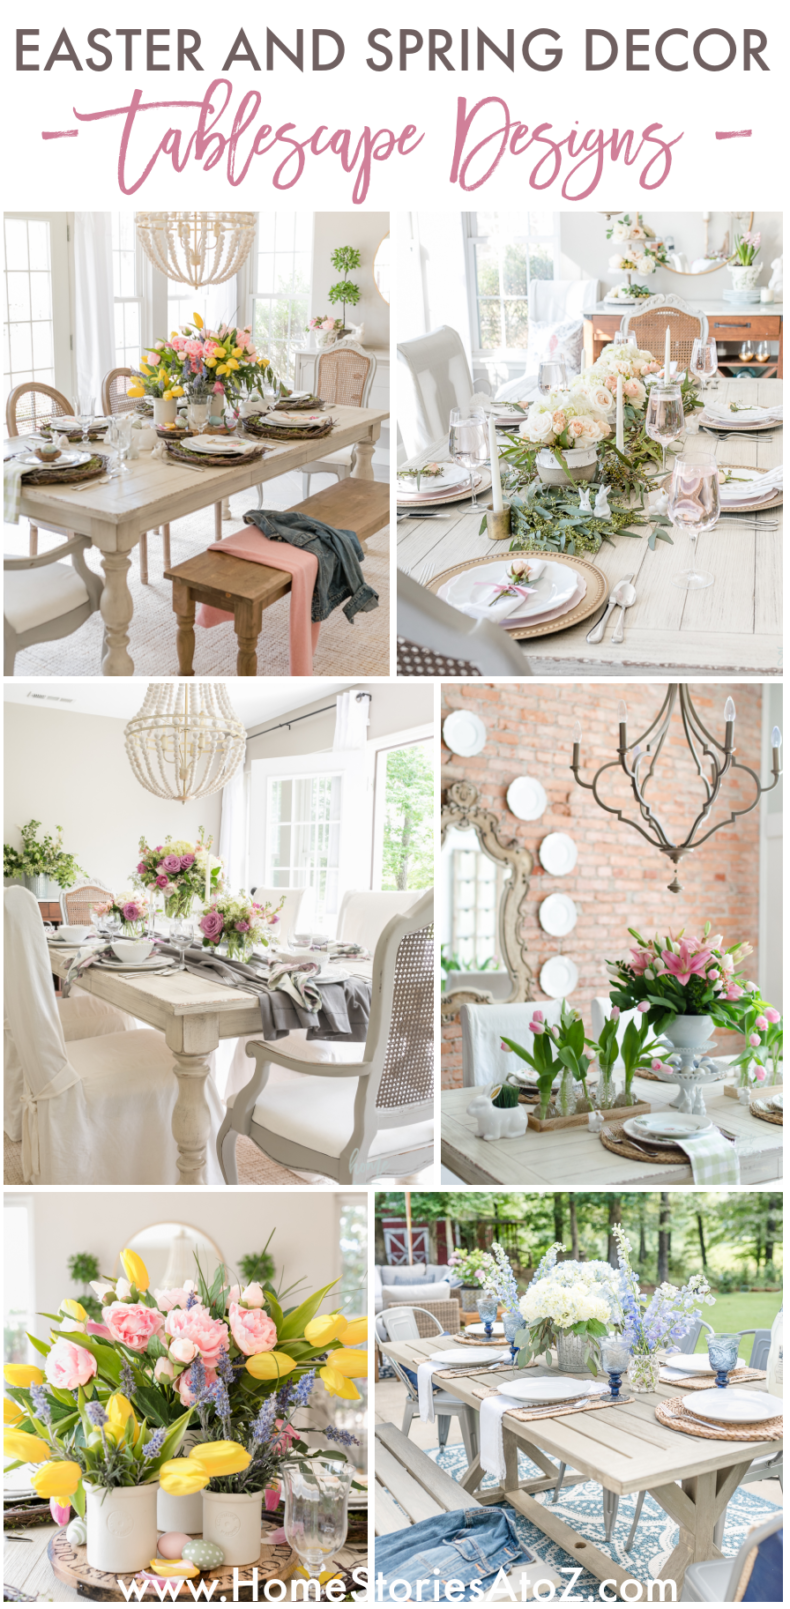 Spring and Easter Tablescape Decor Ideas by Home Stories A TO z